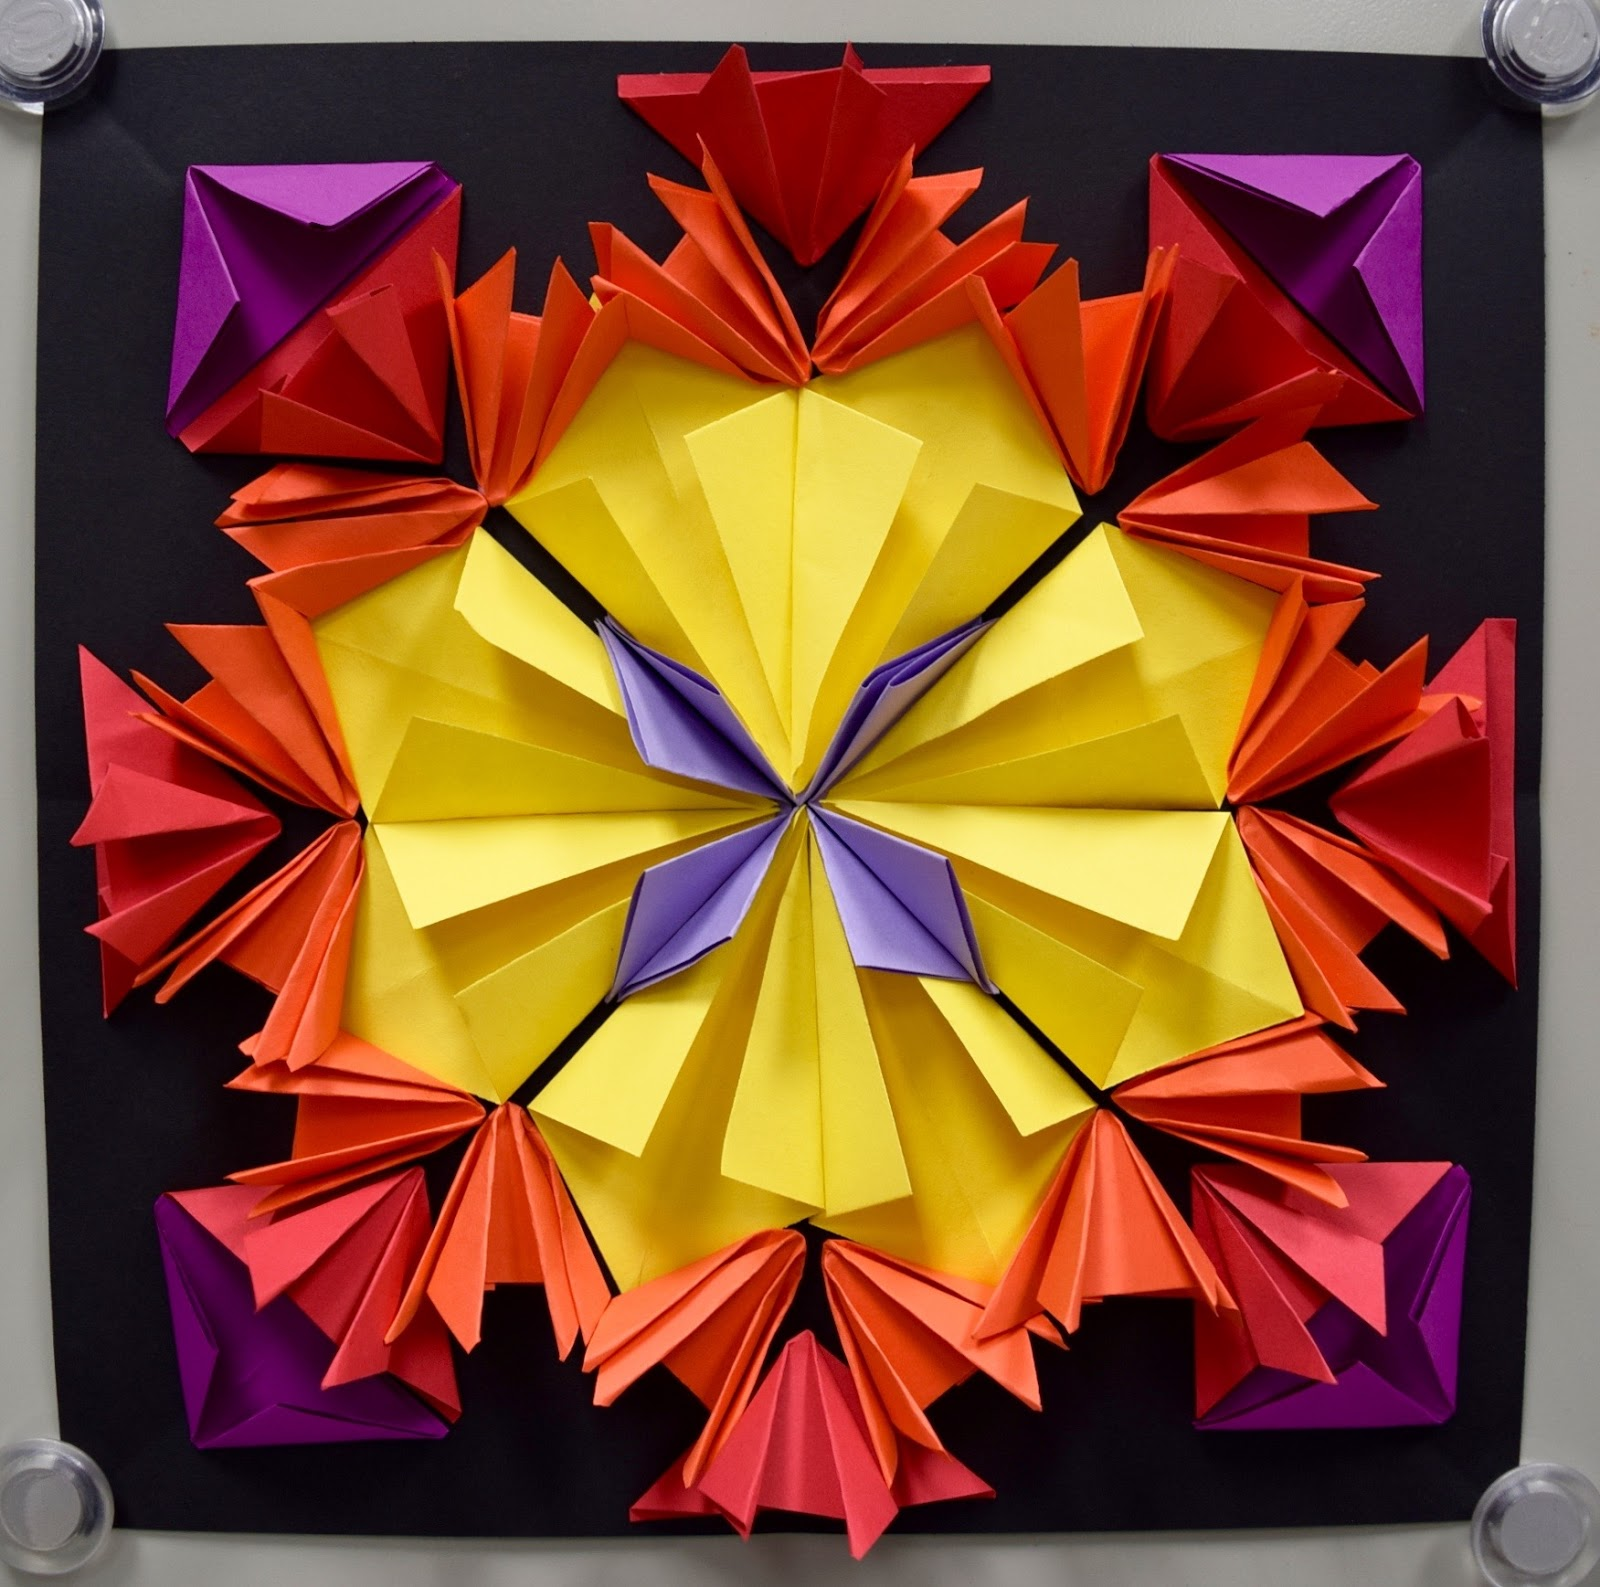 Radial Paper Relief Sculptures (5th): Part 500000 - Art with Mrs. Nguyen